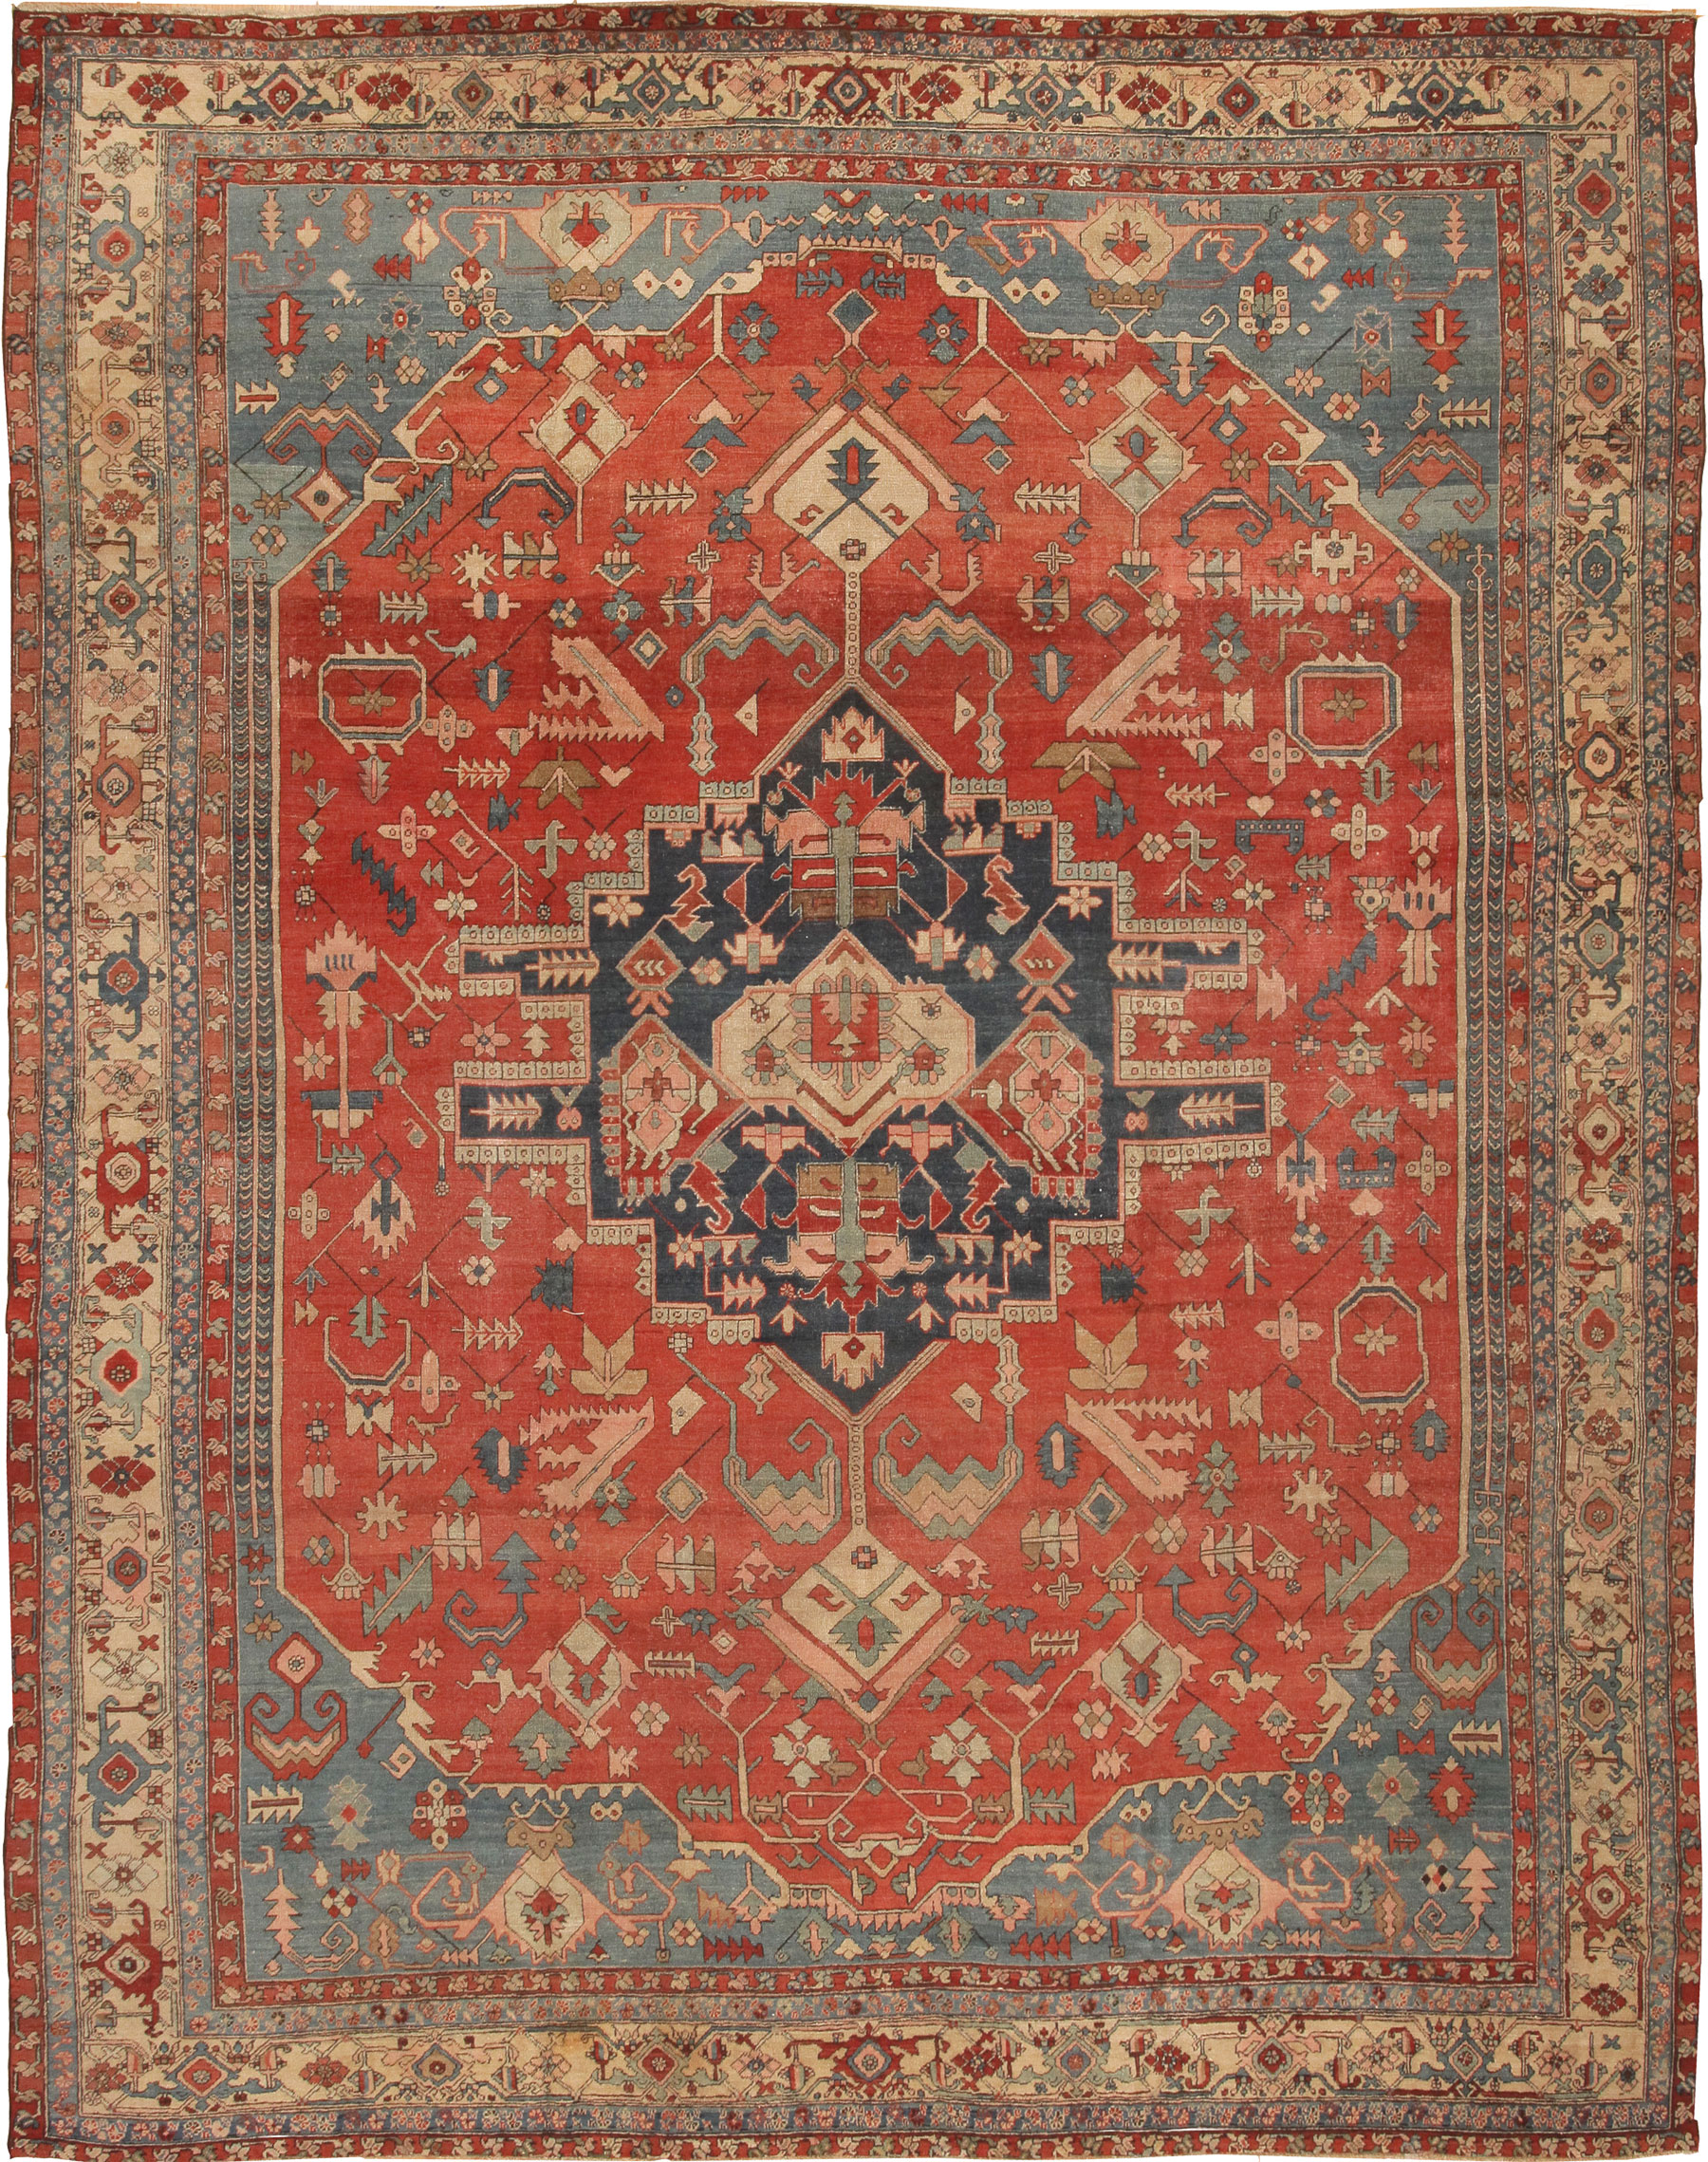 Antique Heriz Serapi Persian Rugs 43441 For Sale Antiques Com